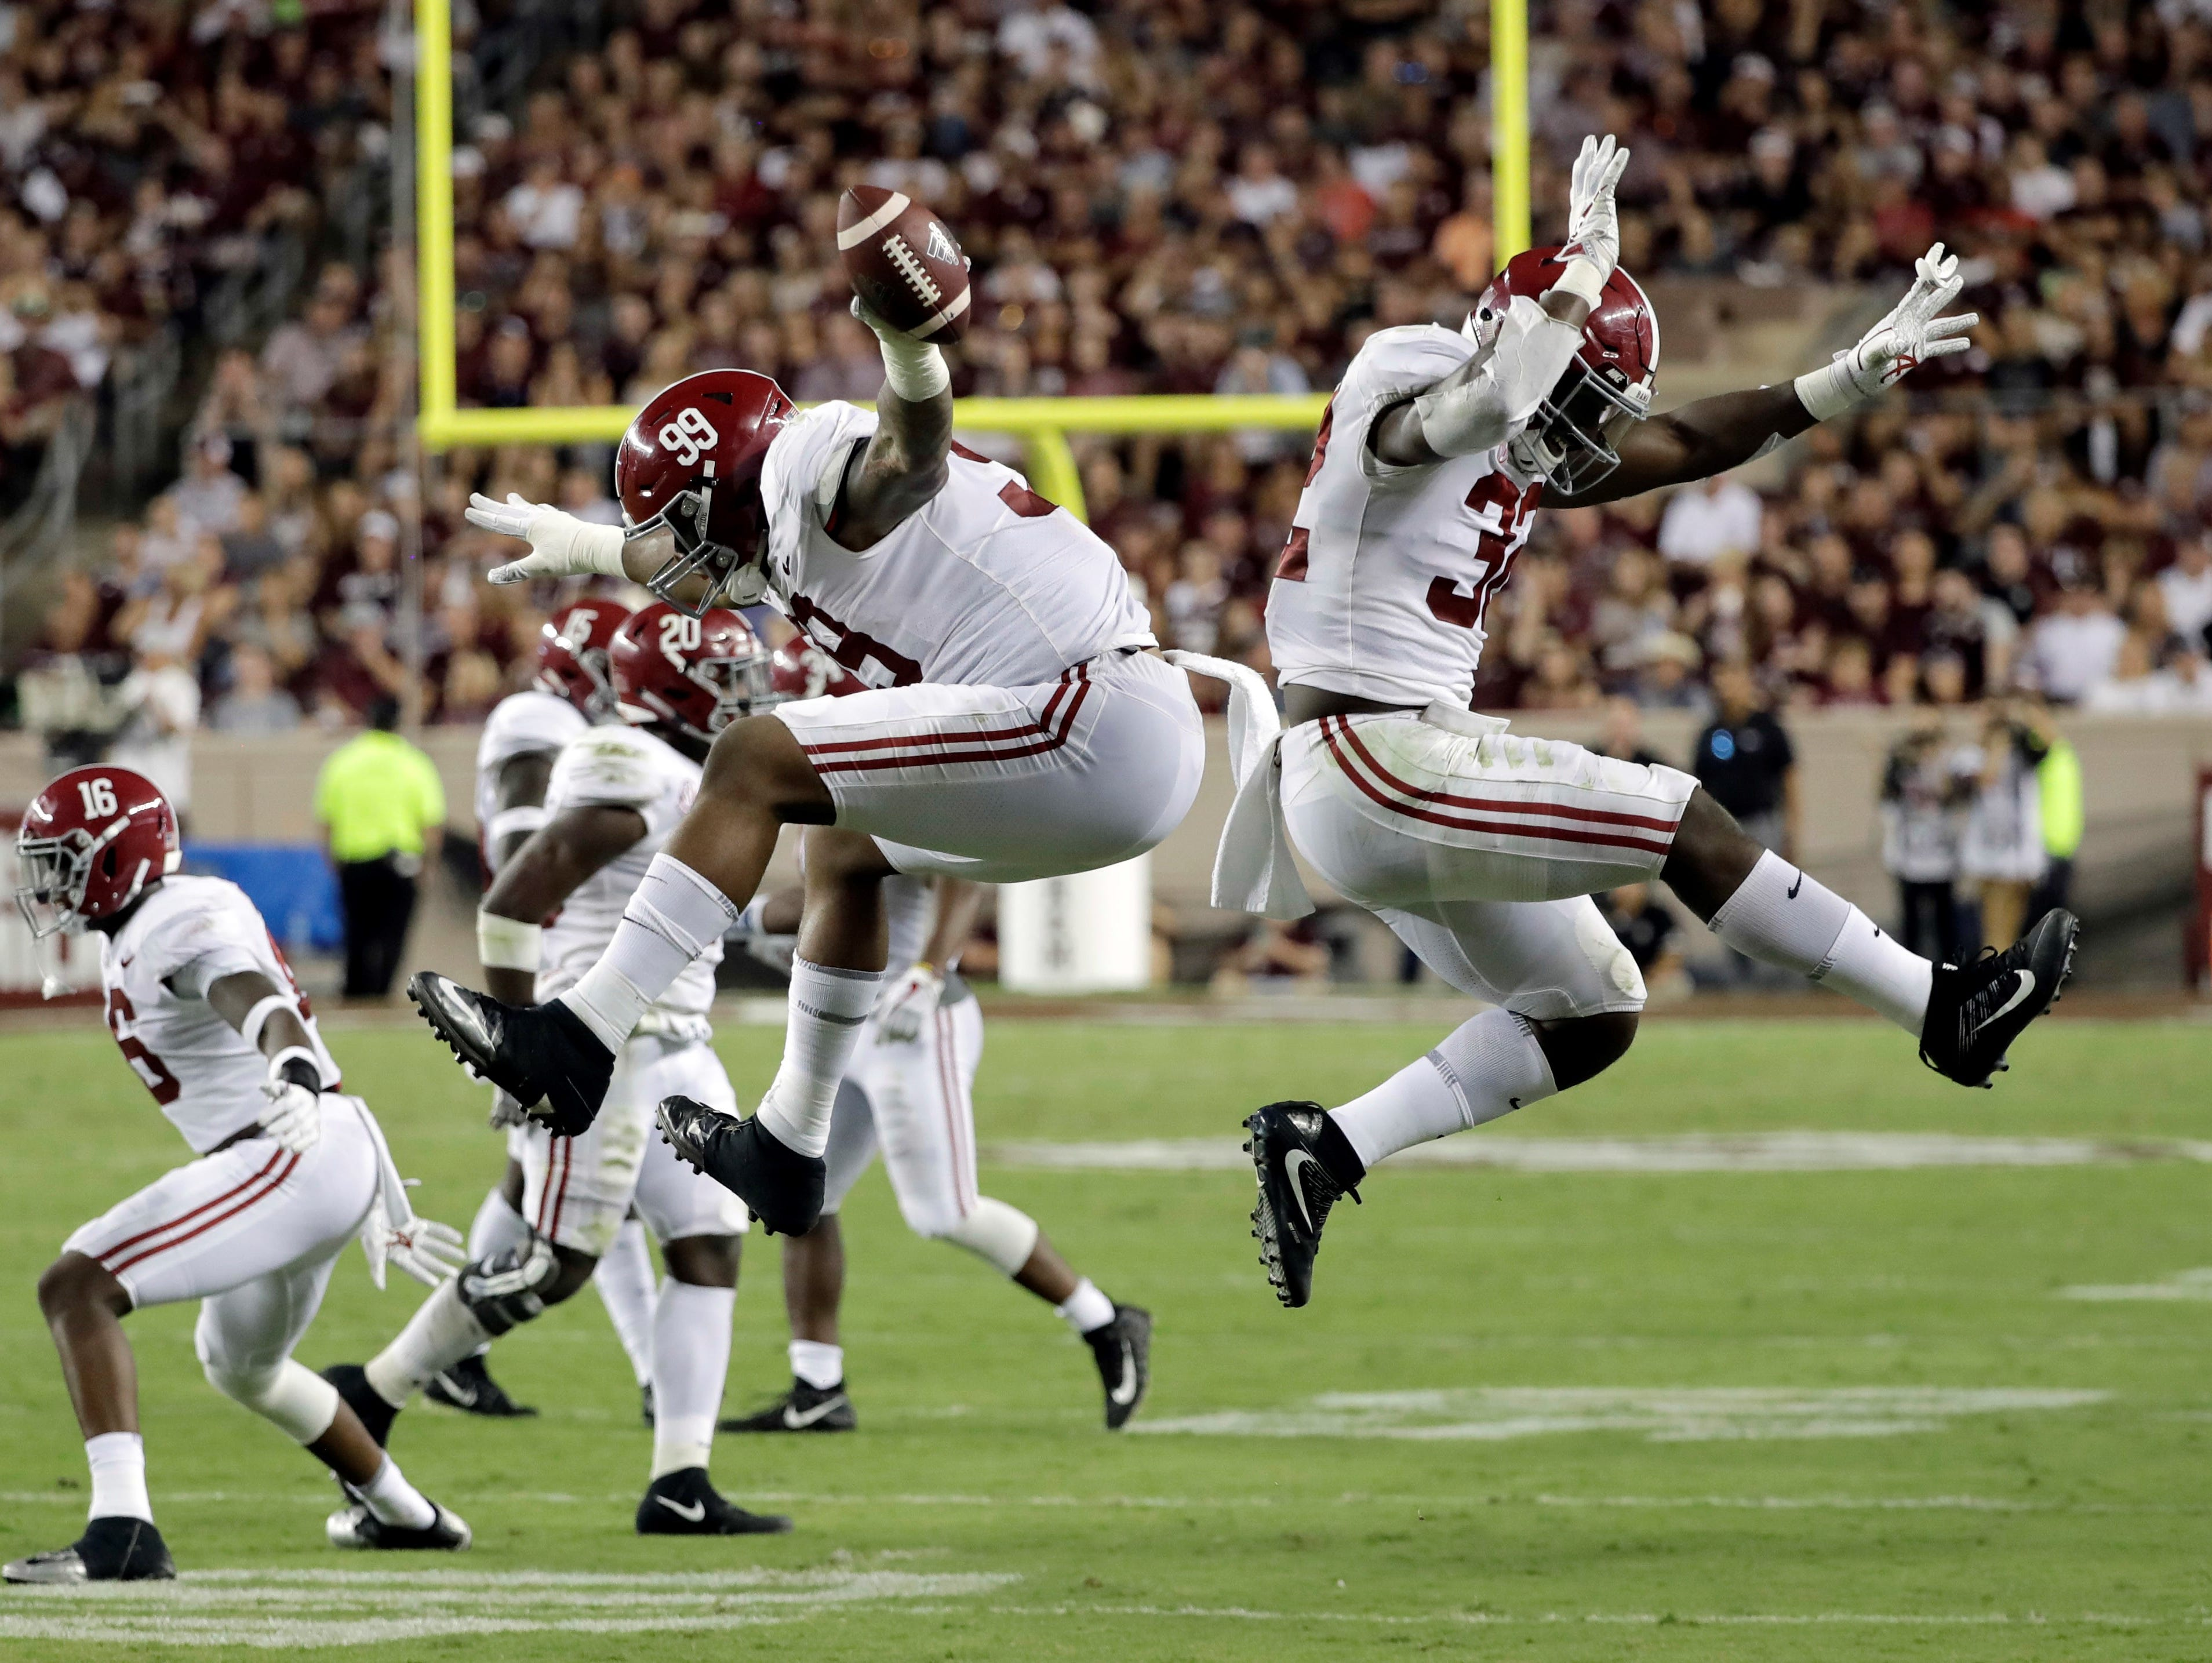 Alabama's Raekwon Davis (99) celebrates with Rashaan Evans (32) after recovering a fumble against Texas A&M during the second quarter of an NCAA college football game Saturday, Oct. 7, 2017, in College Station, Texas. (AP Photo/David J. Phillip)